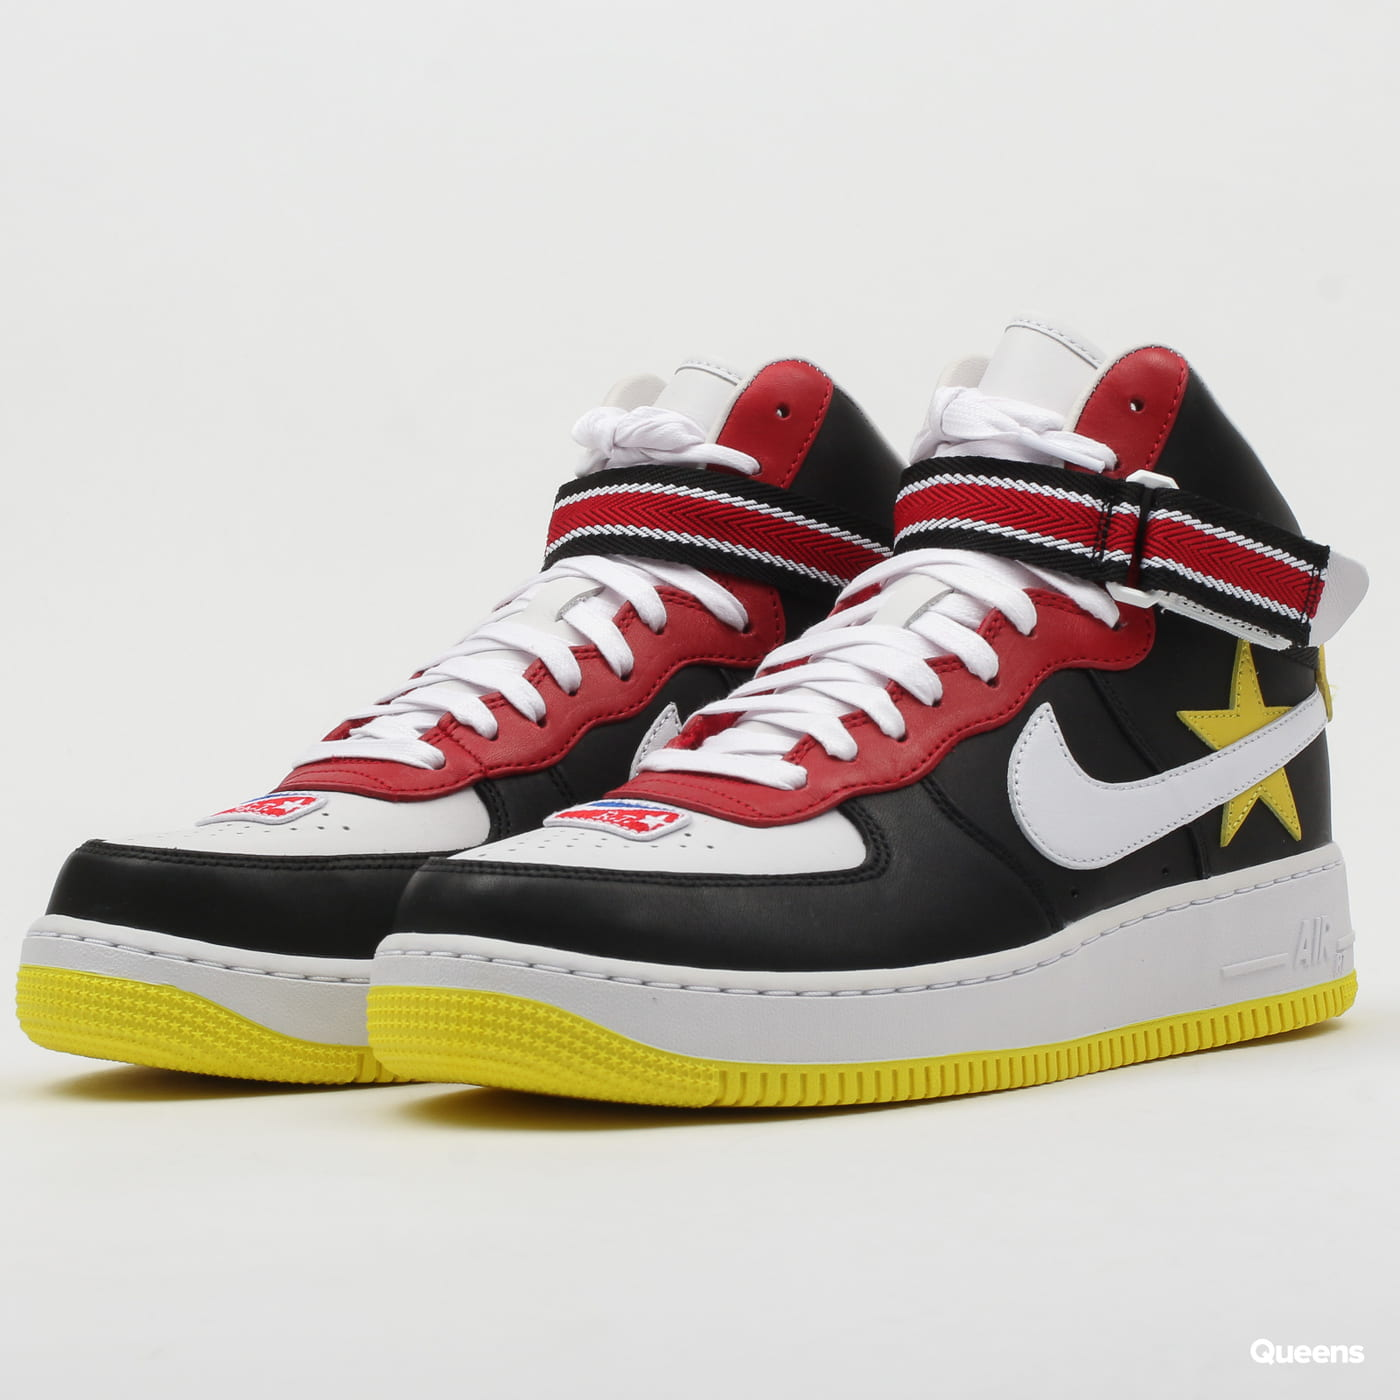 0eade5f324069 Obuv Nike Riccardo Tisci x Nike Air Force 1 High gym red / opti yellow -  black (AQ3366-600) – Queens 💚